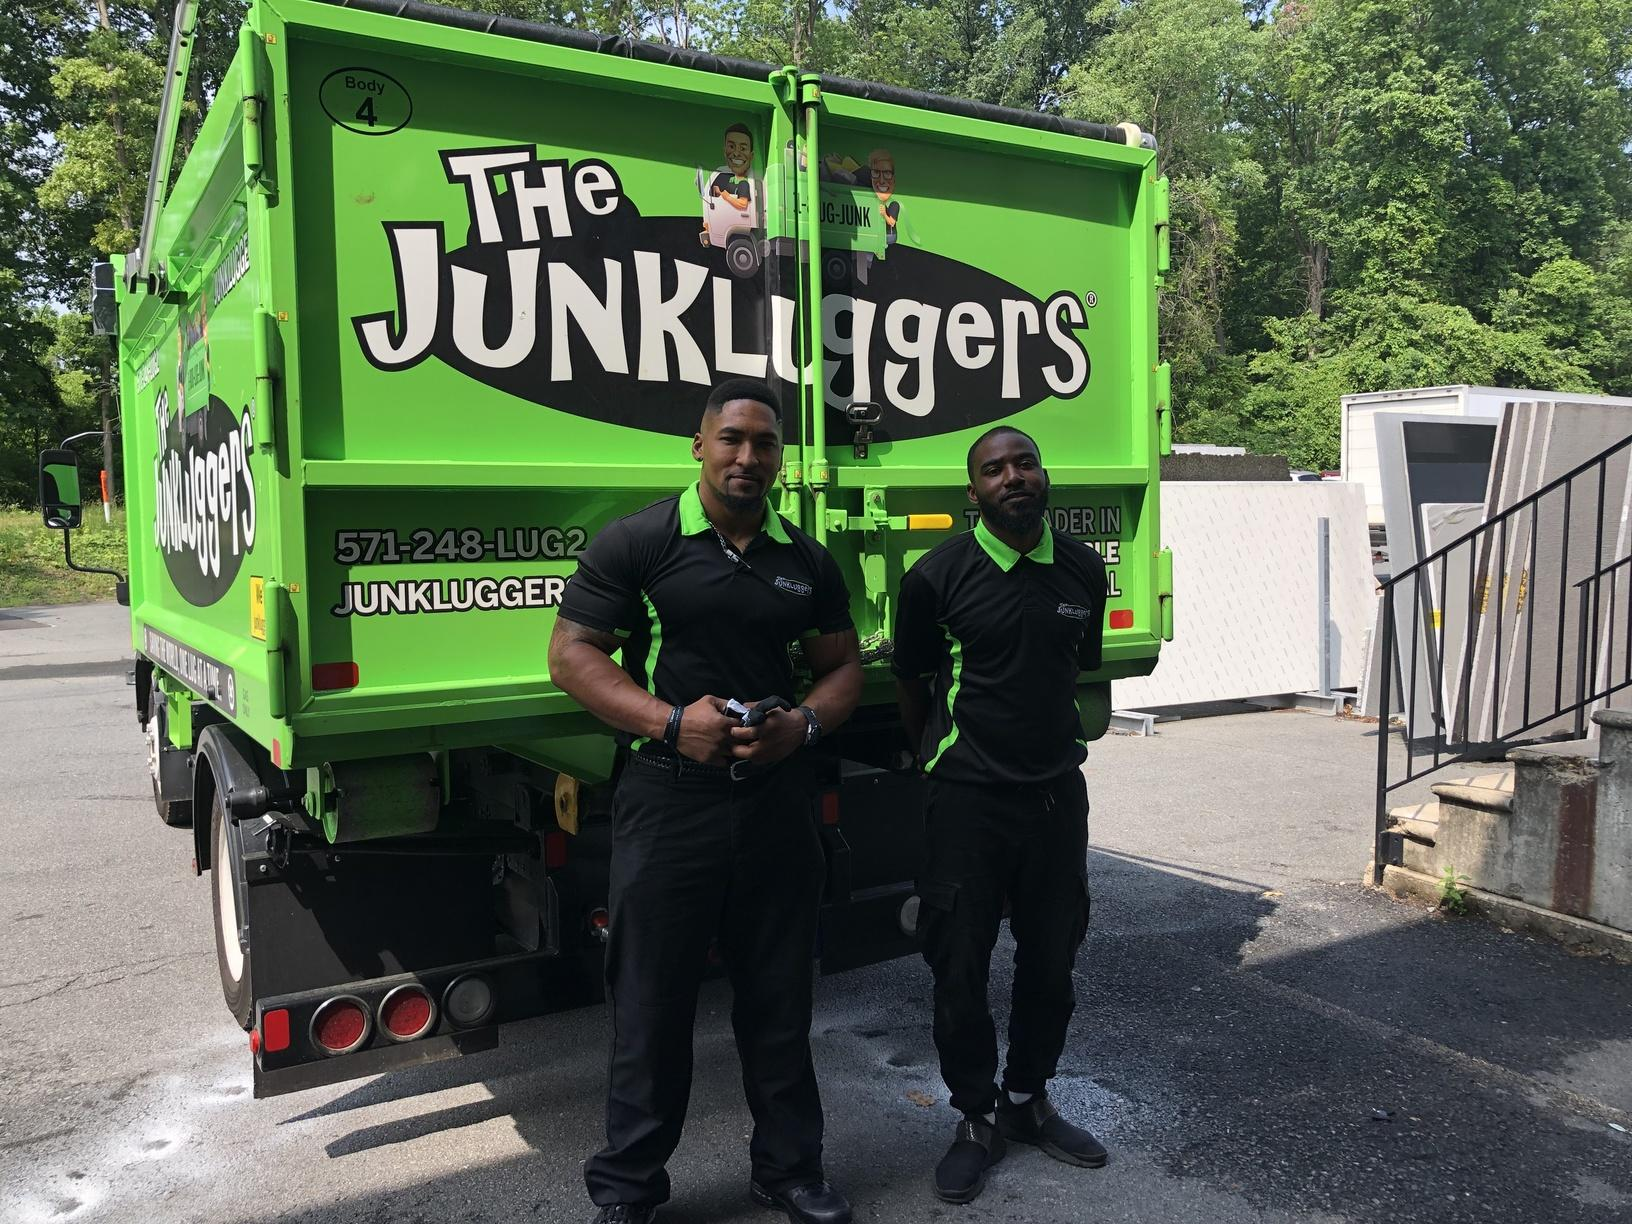 Junkluggers supporting clothing drive